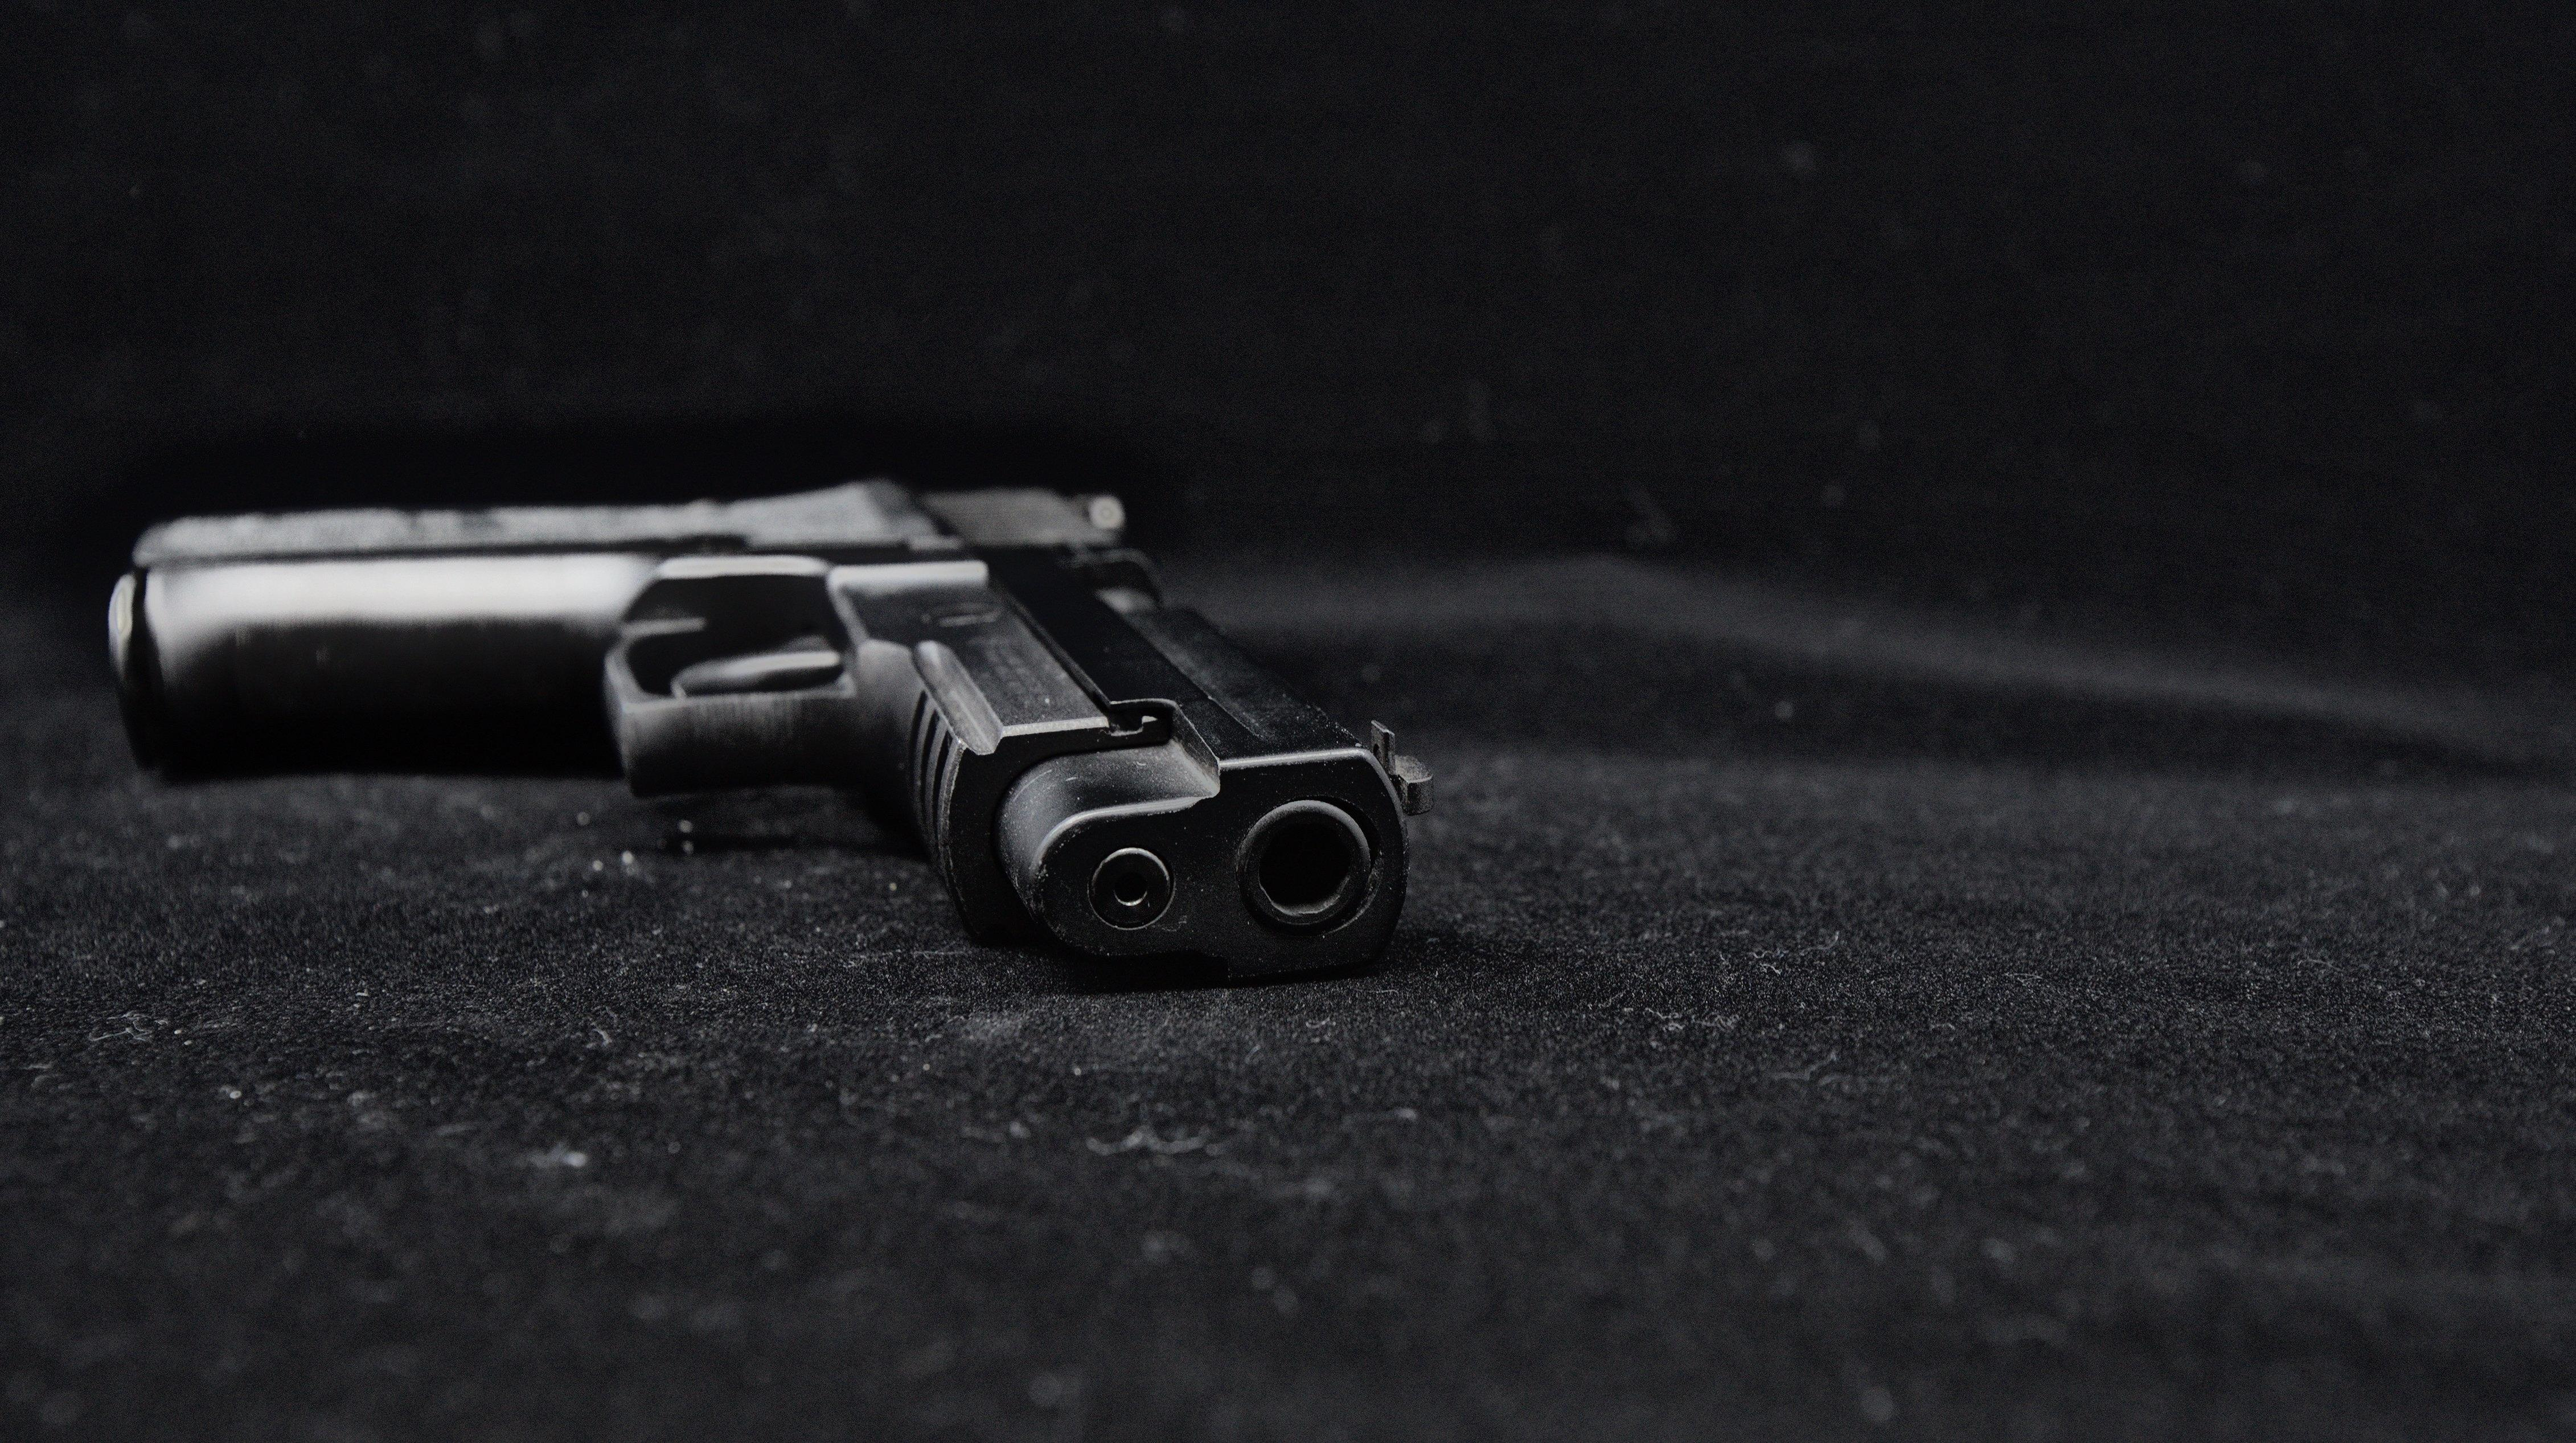 Gun Owners More Likely To Vote Than Non-Gun Owners